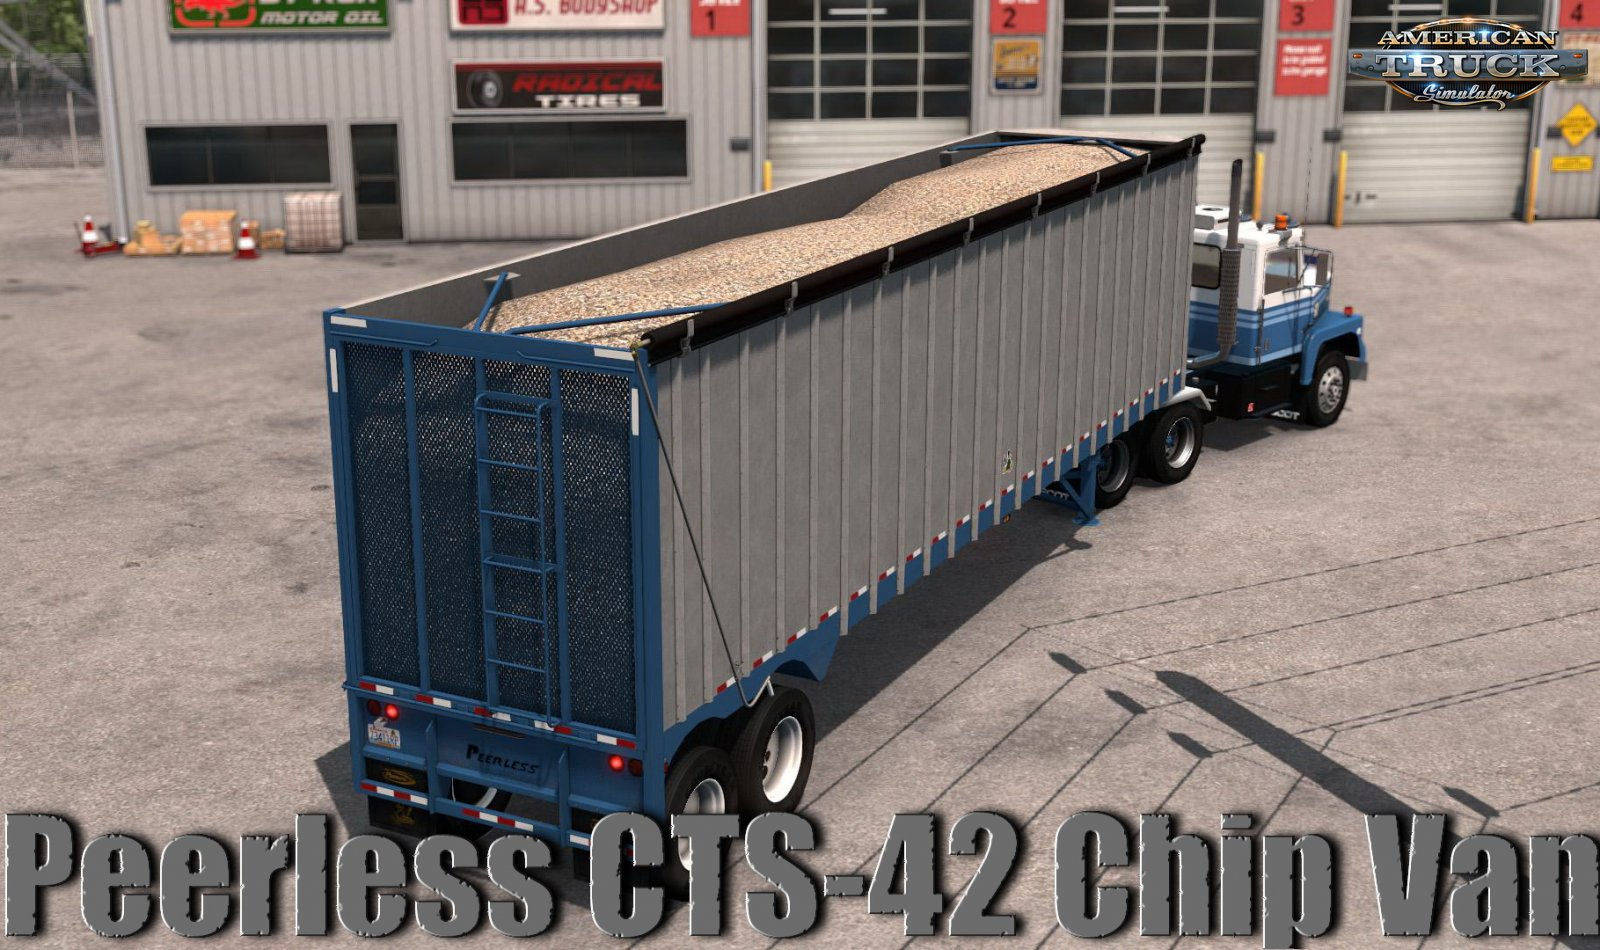 Trailer Peerless CTS-42 Chip Van v1.0 (1.37.x)